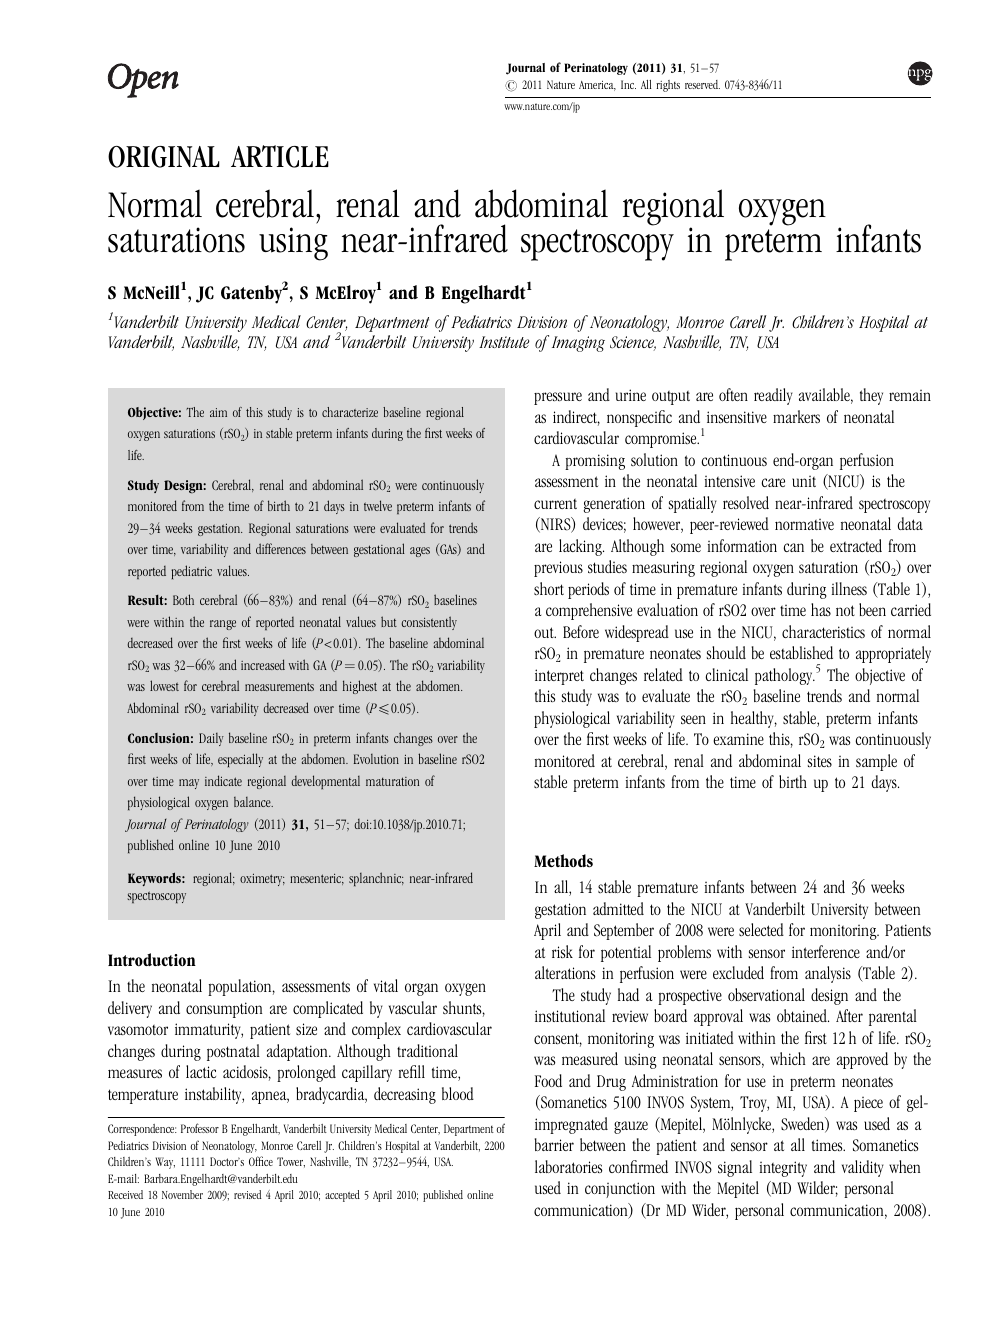 Normal cerebral, renal and abdominal regional oxygen